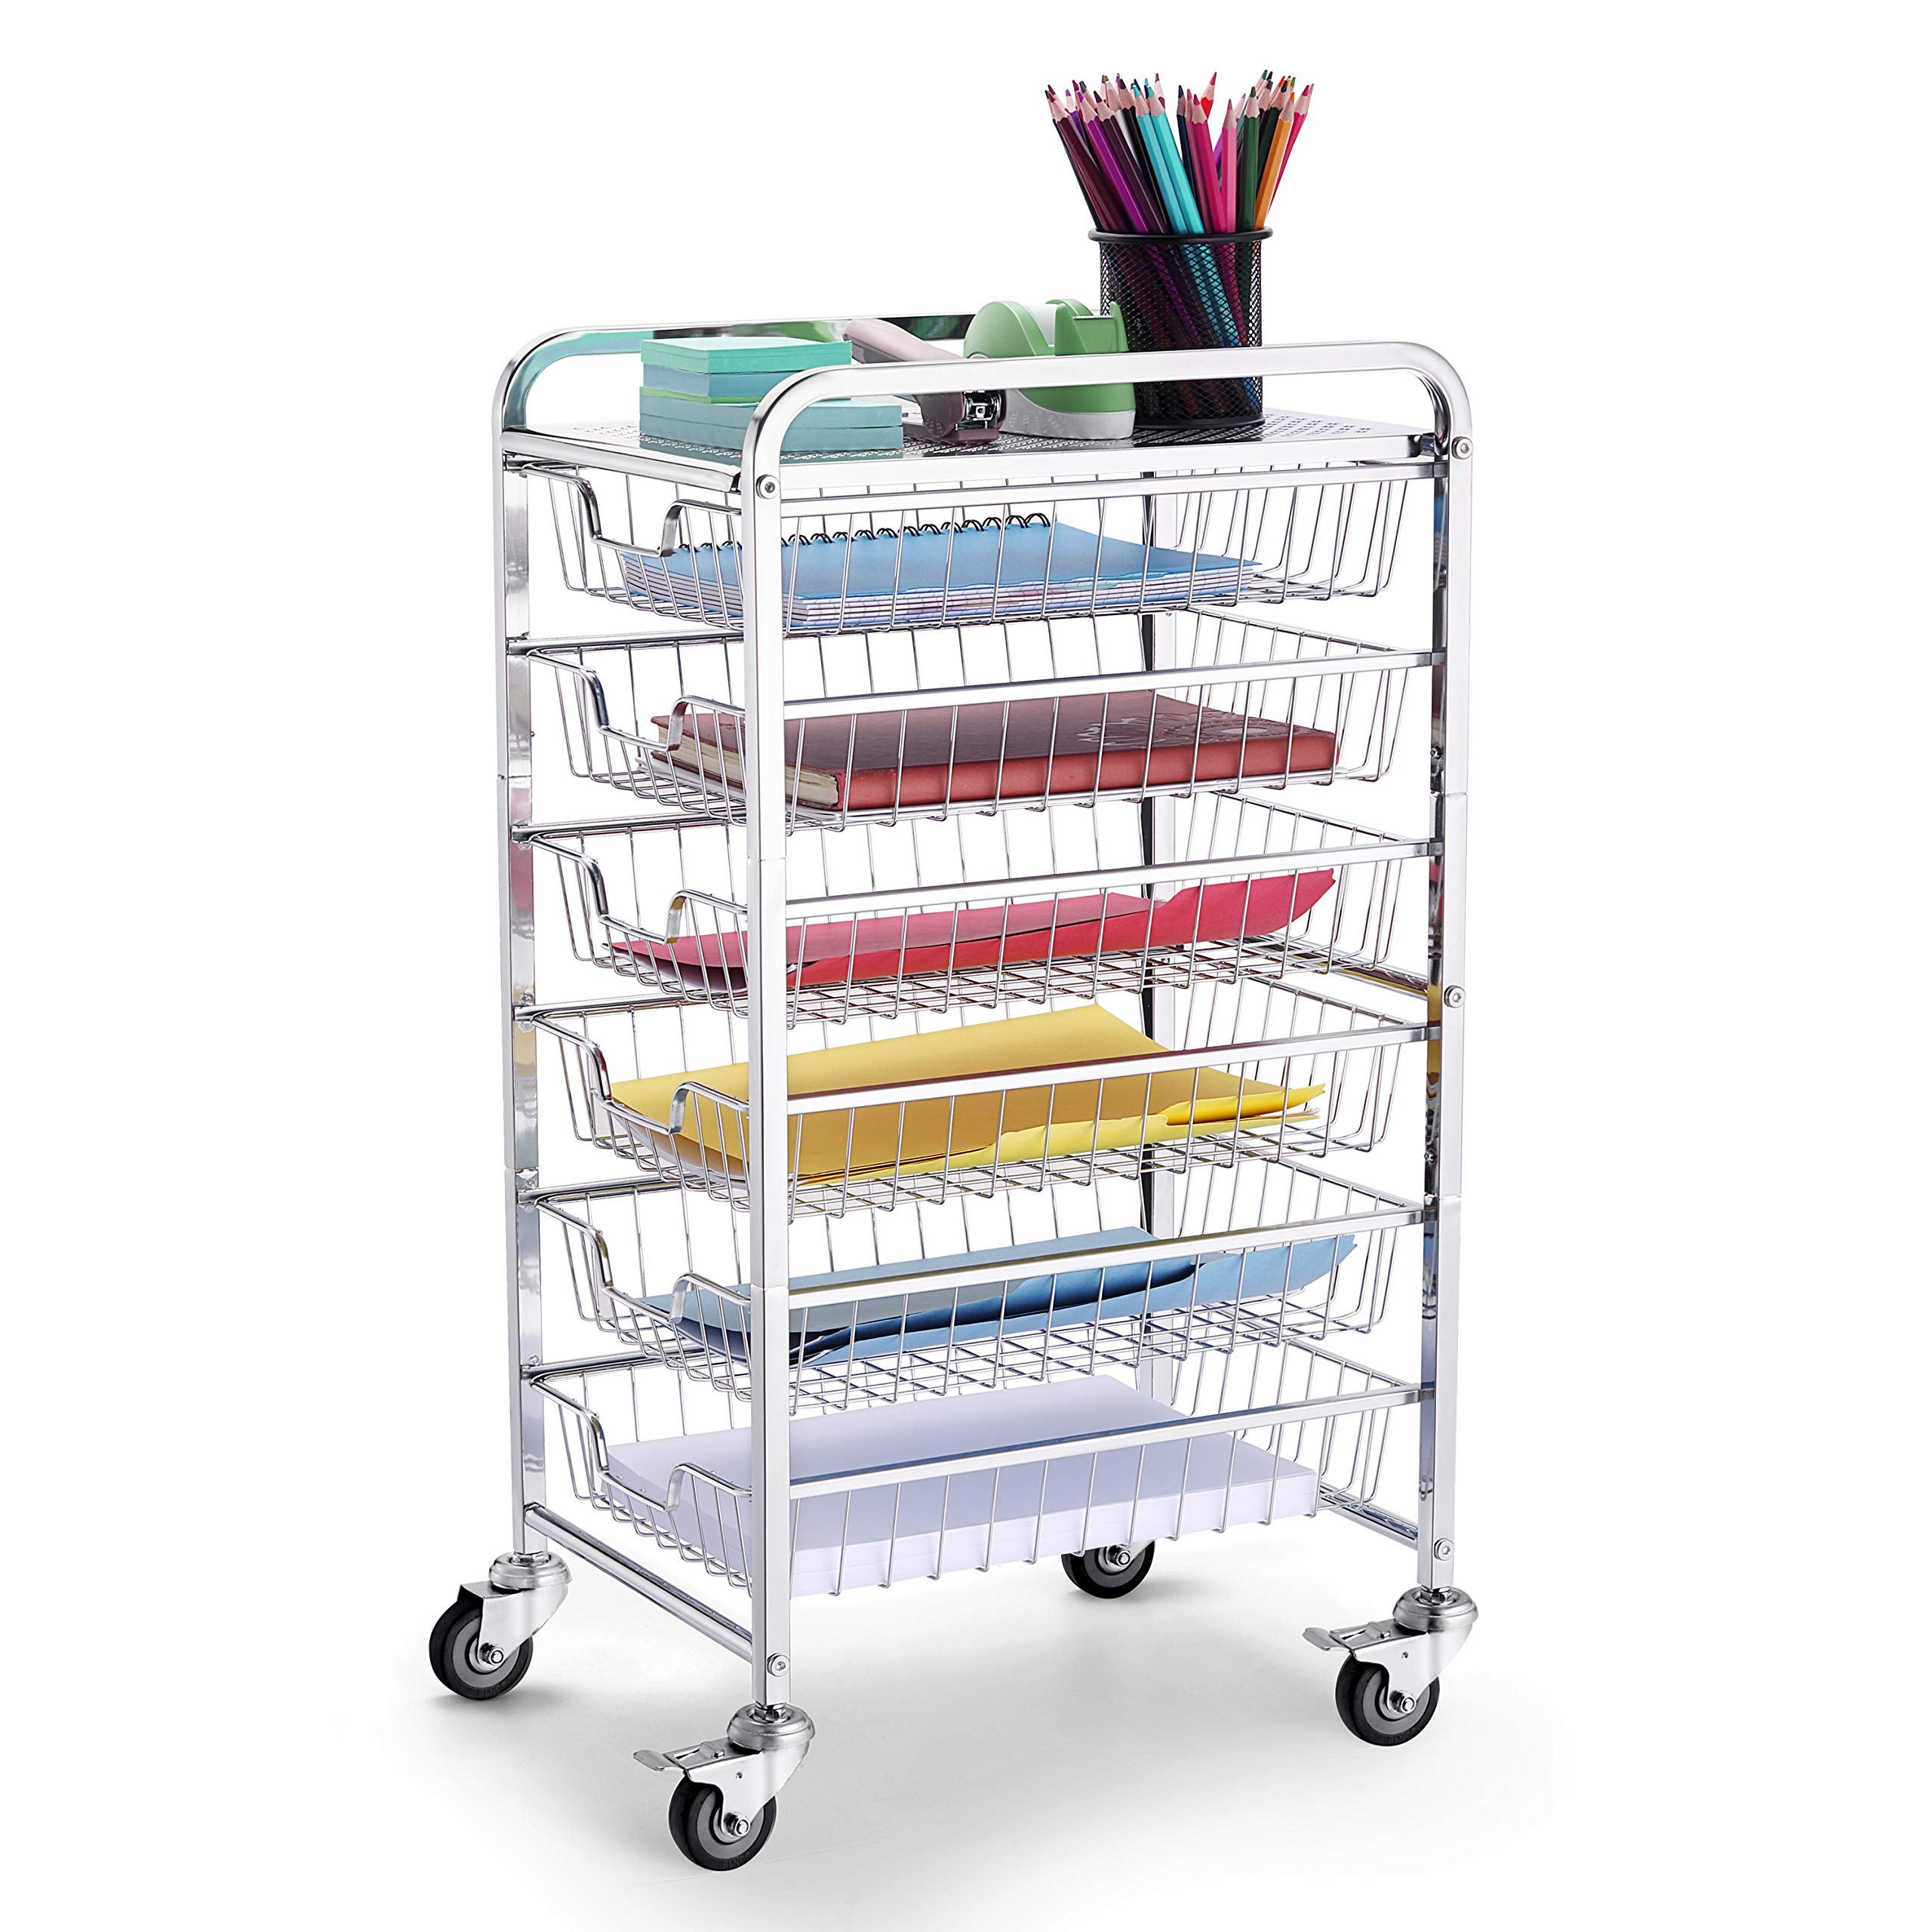 Simple Trending 6-Drawer Organizer Cart, Office Supplies Cabinet Organizer with Sliding Storage Drawers, Chrome by Simple Trending